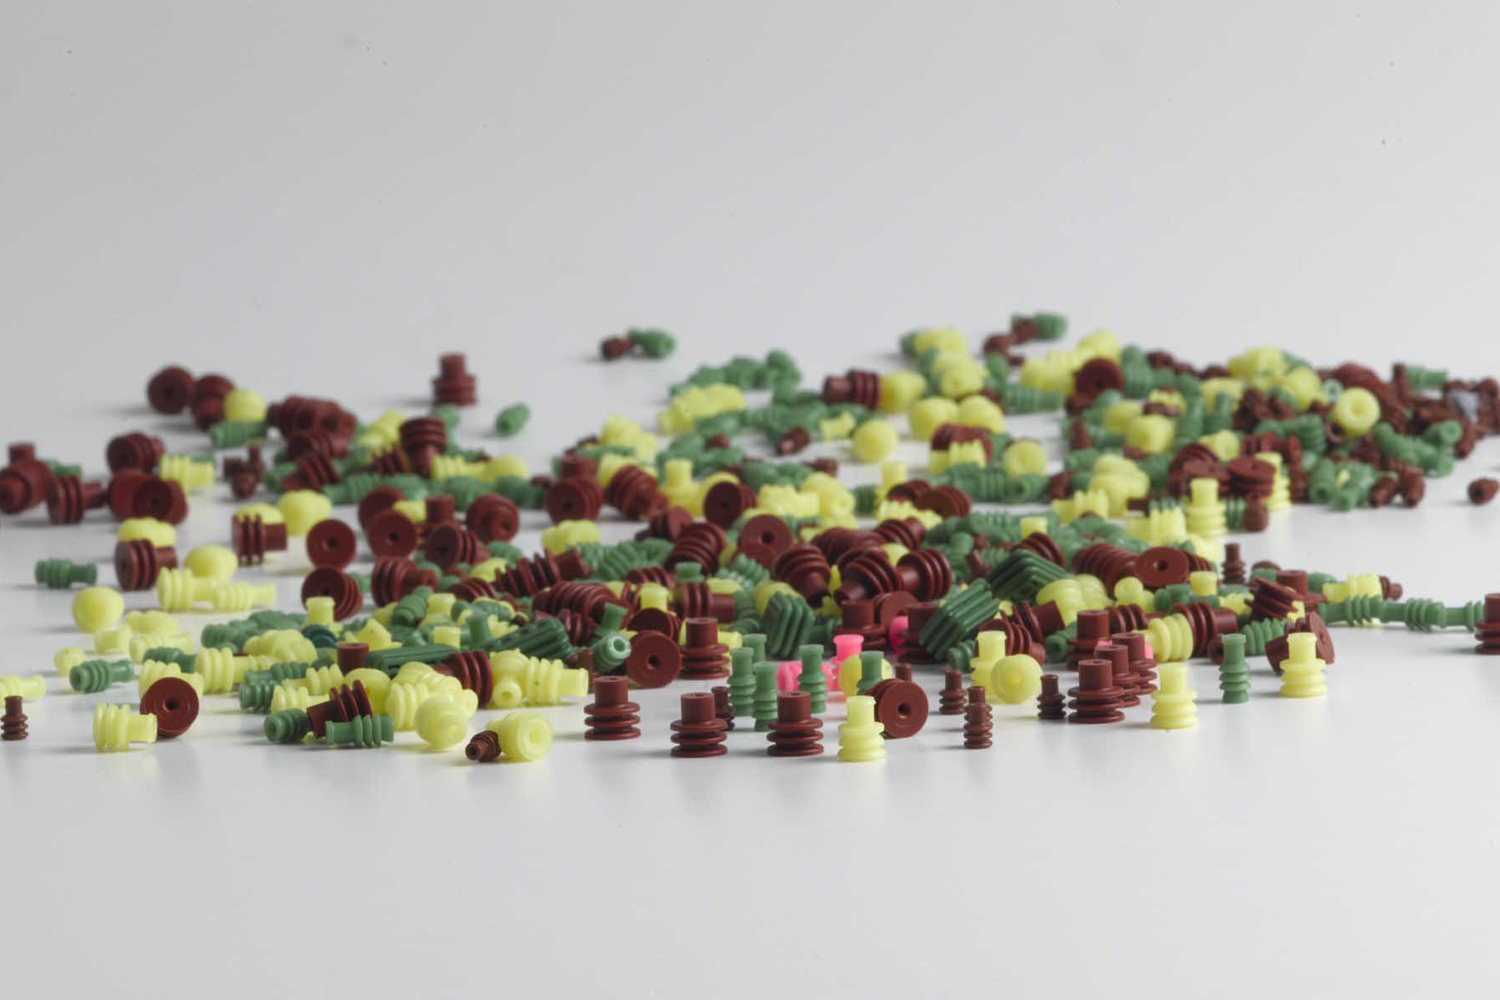 Colored rubber parts in green, red, and yellow on a table for inspection